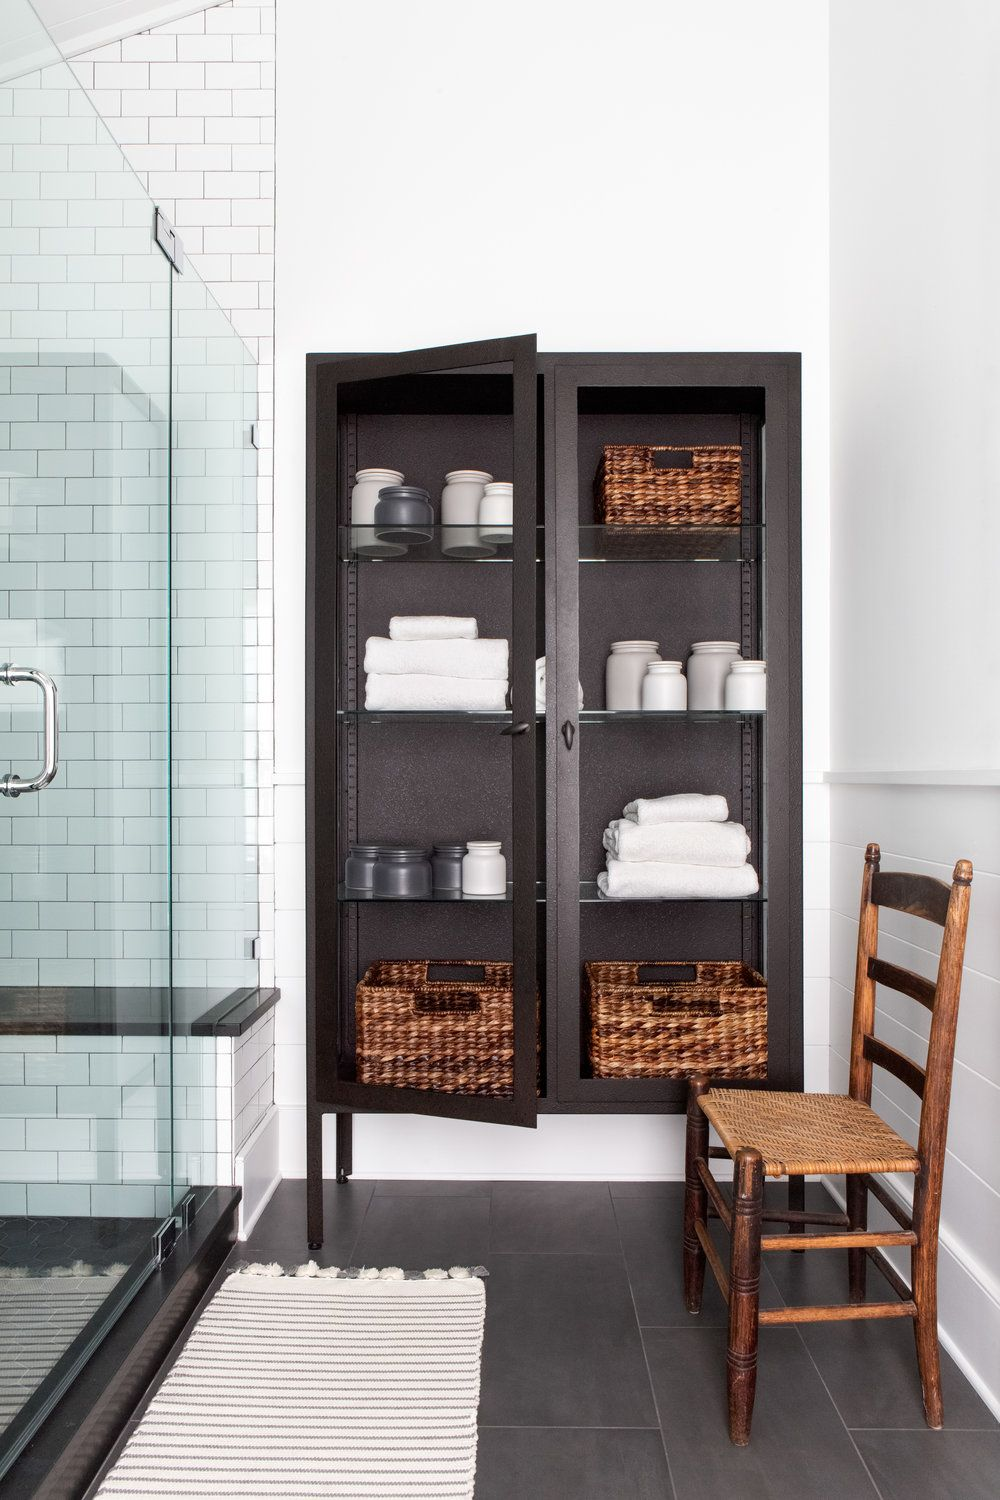 20 Best Bathroom Storage Ideas in 2020 - Creative Bathroom Storage